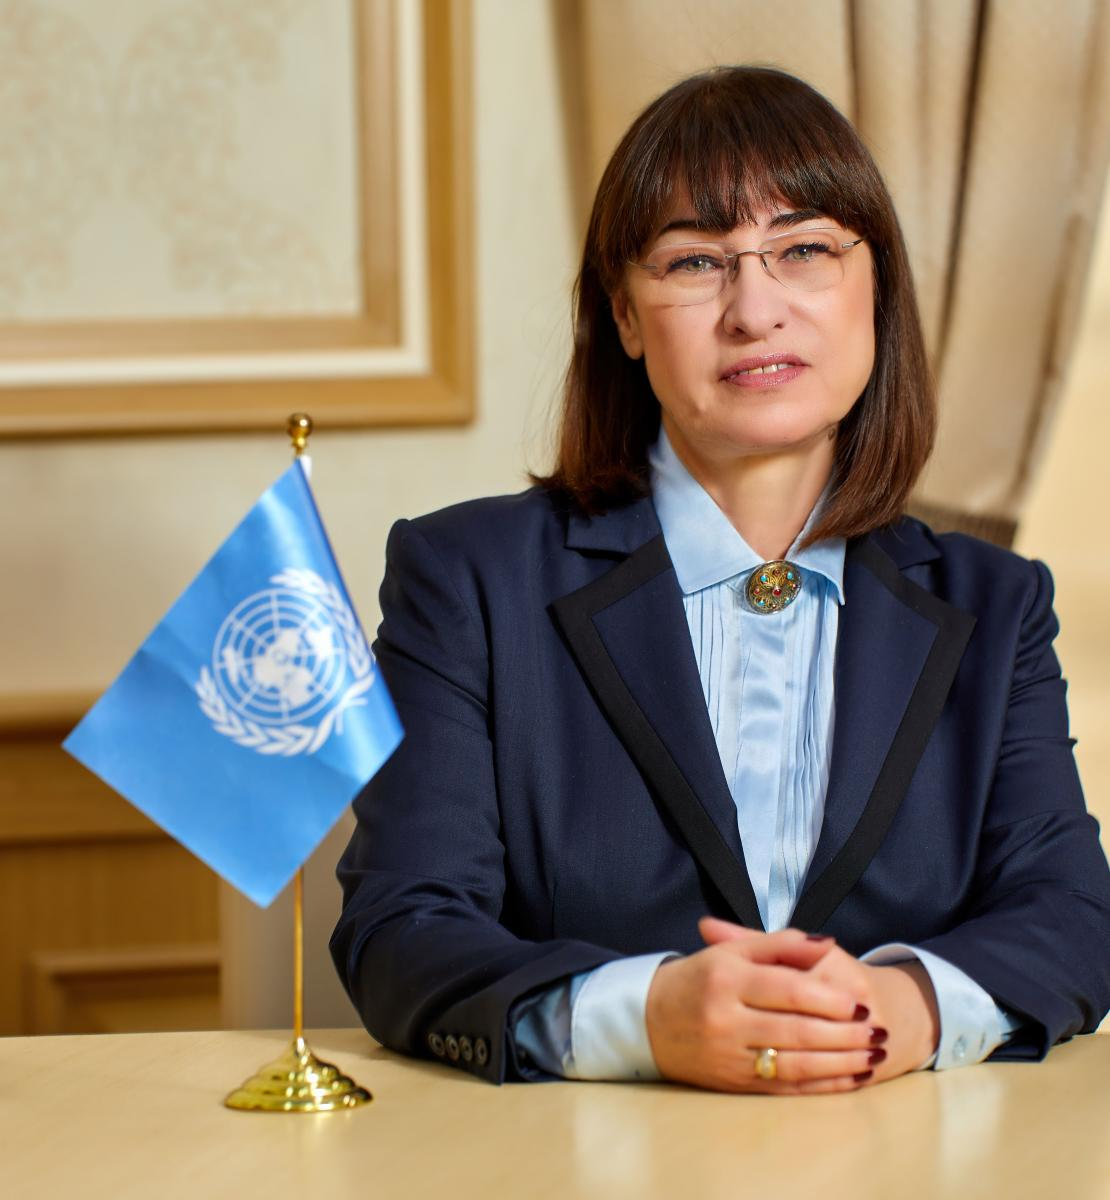 Official photo of the new appointed Resident Coordinator for Egypt, Elena Panova.